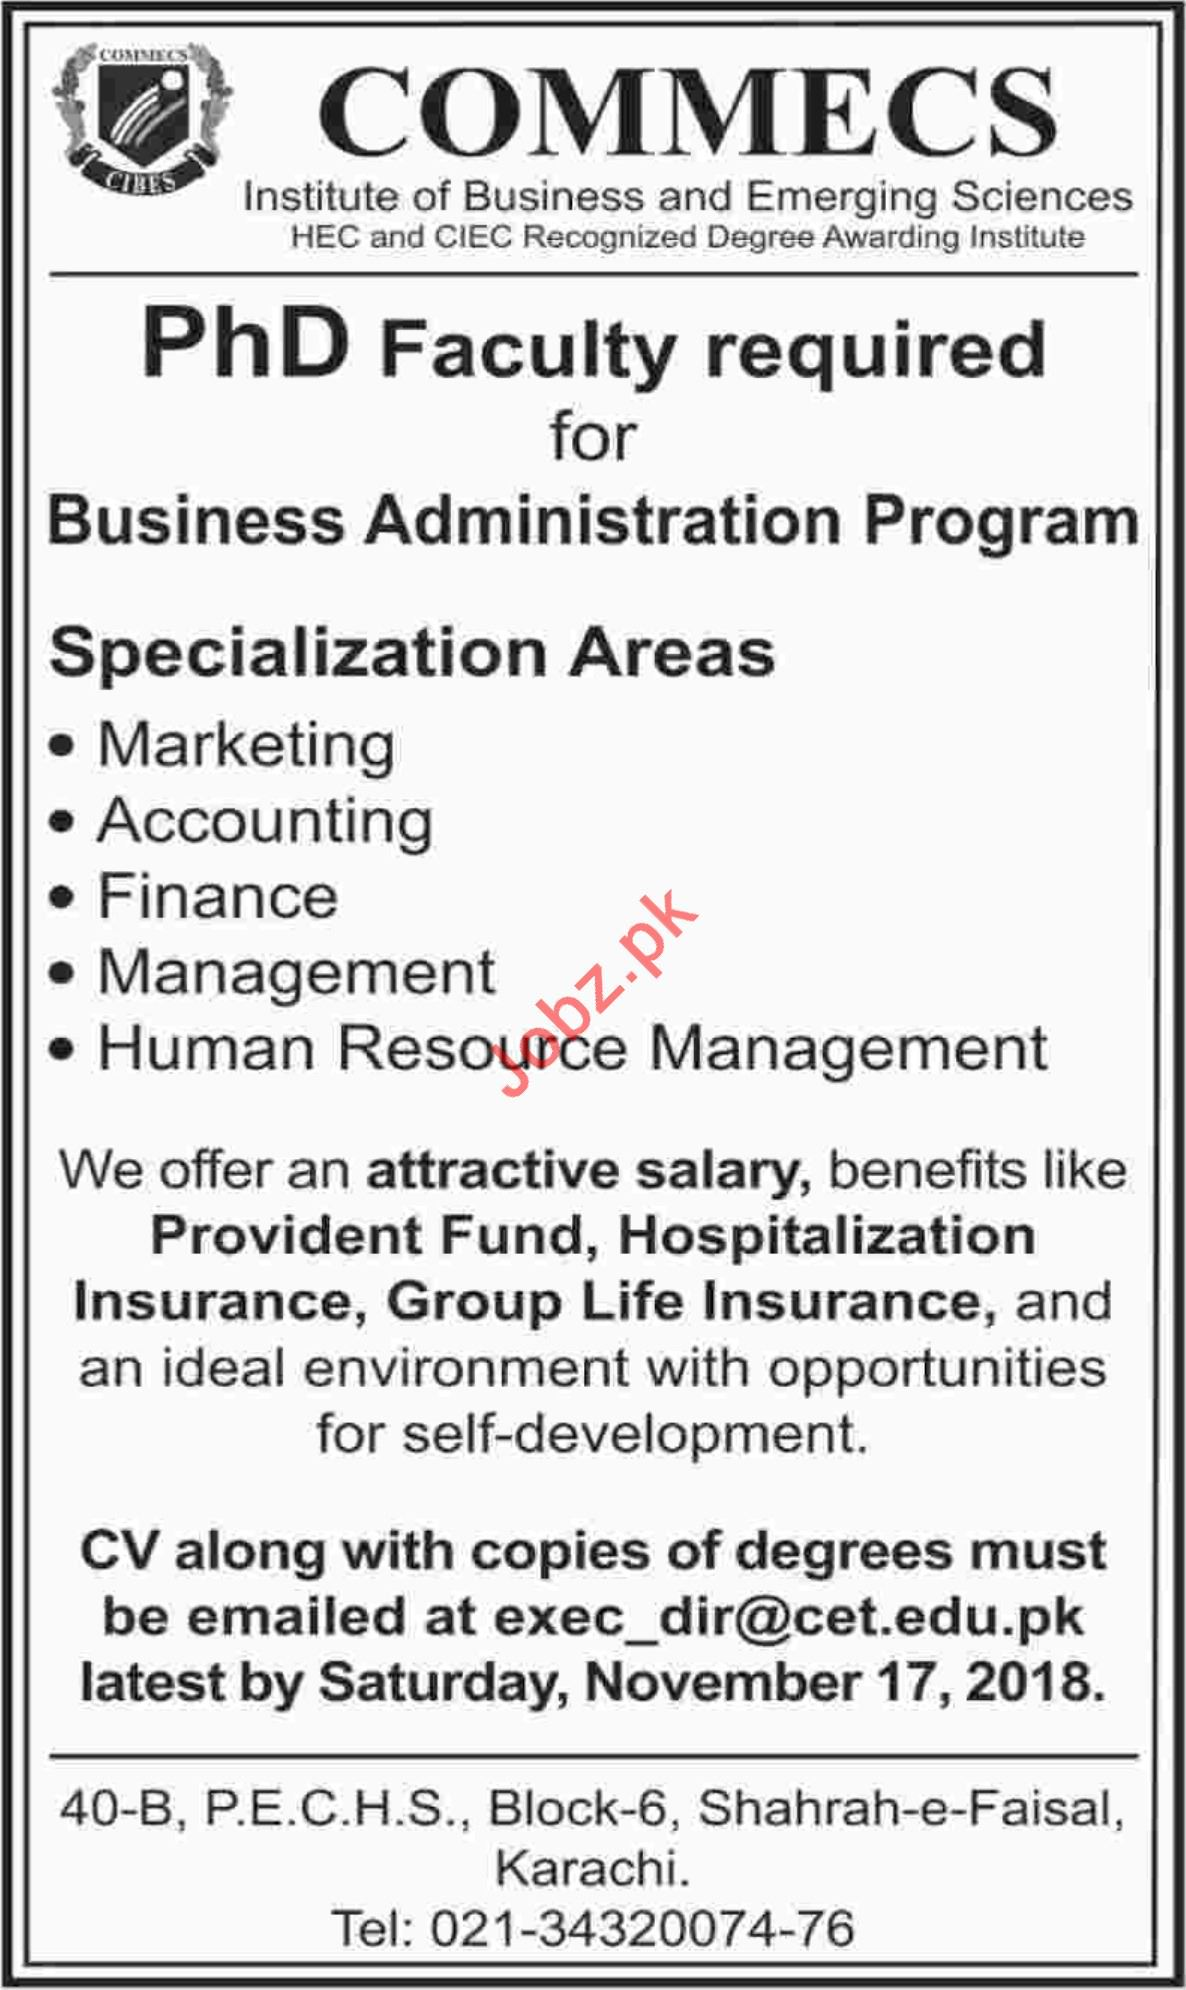 Commecs College PhD Faculty Required